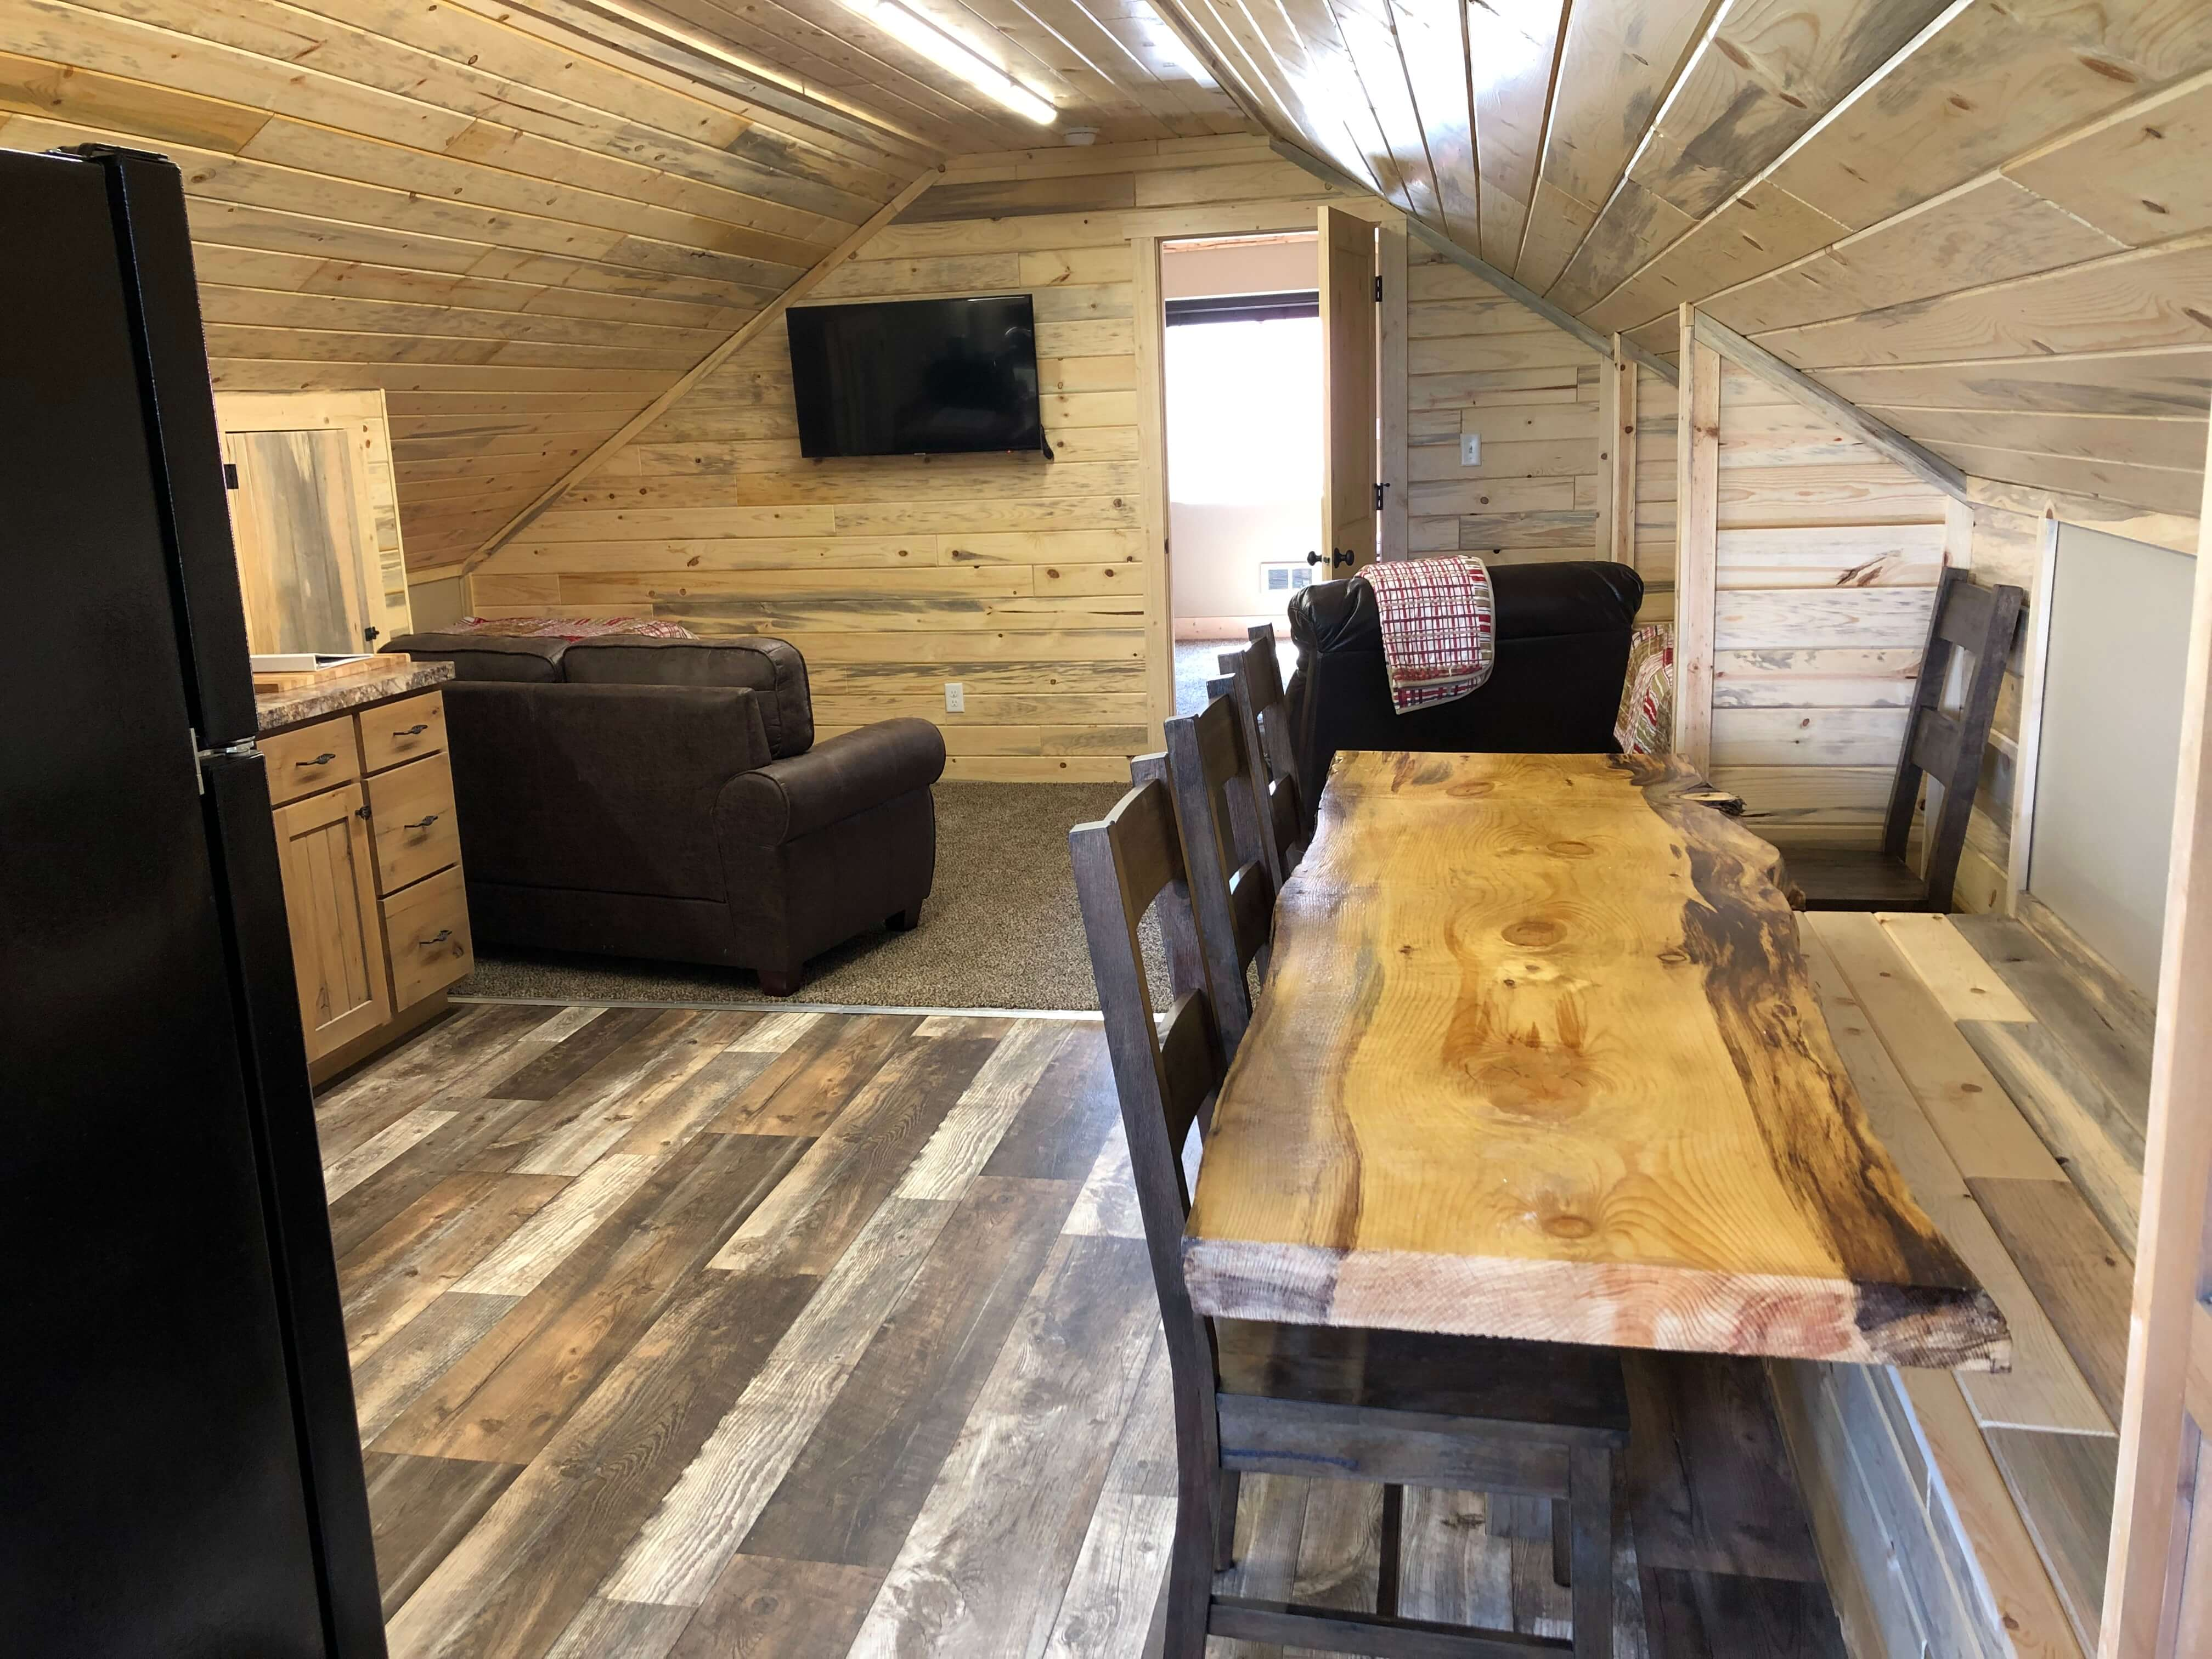 Cabin loft with dinning table, couch, and TV